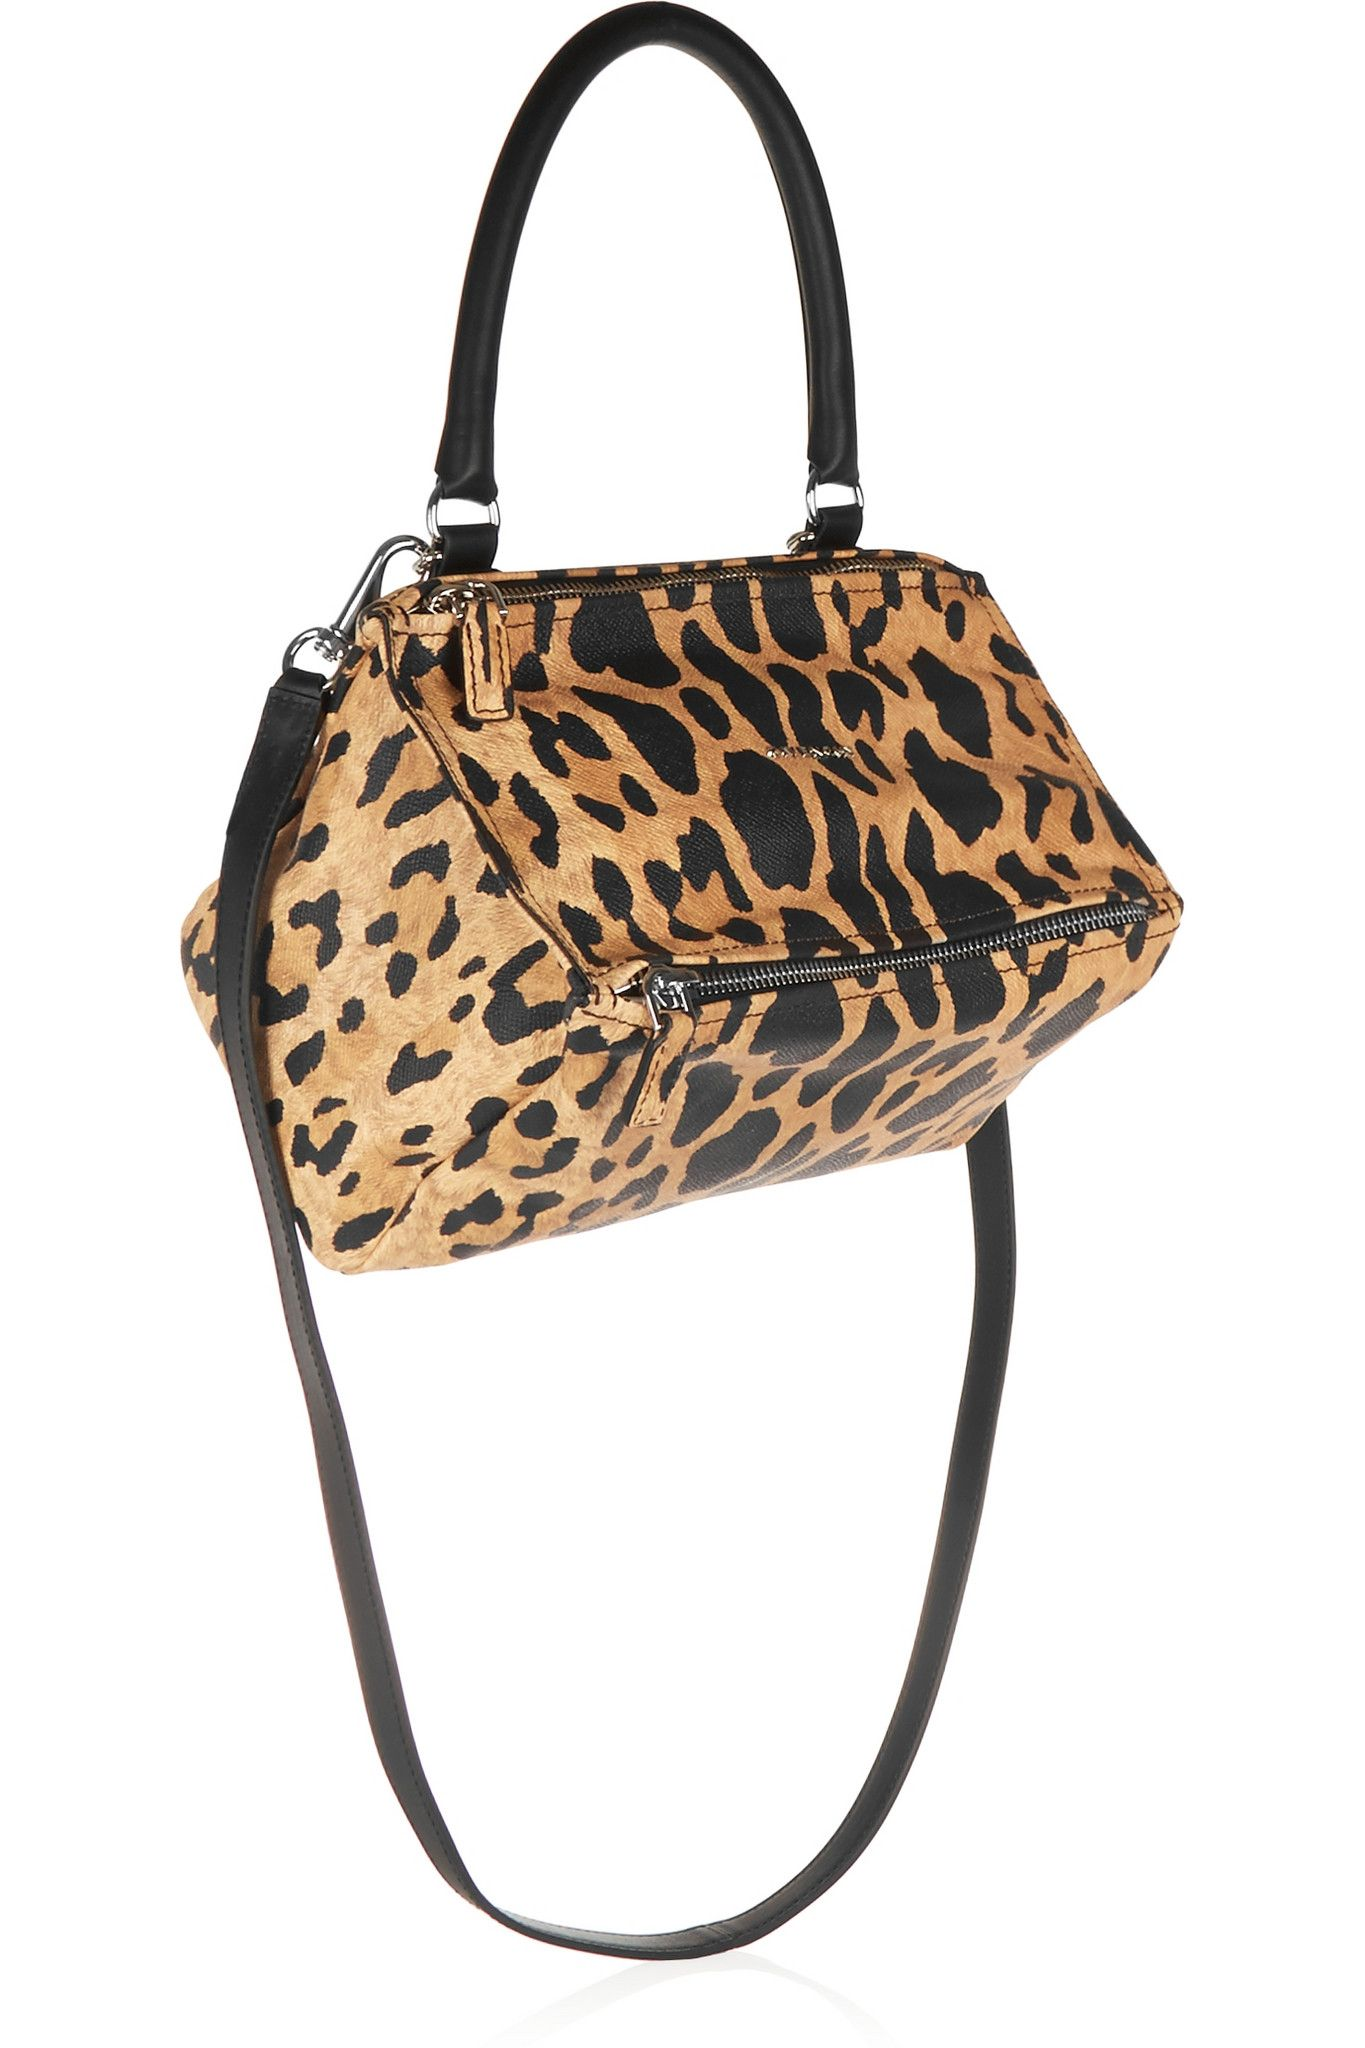 Givenchy Small Pandora Shoulder Bag In Leopard Print Washed Leather Au 2 208 78 Https Www A Porter Products 587763